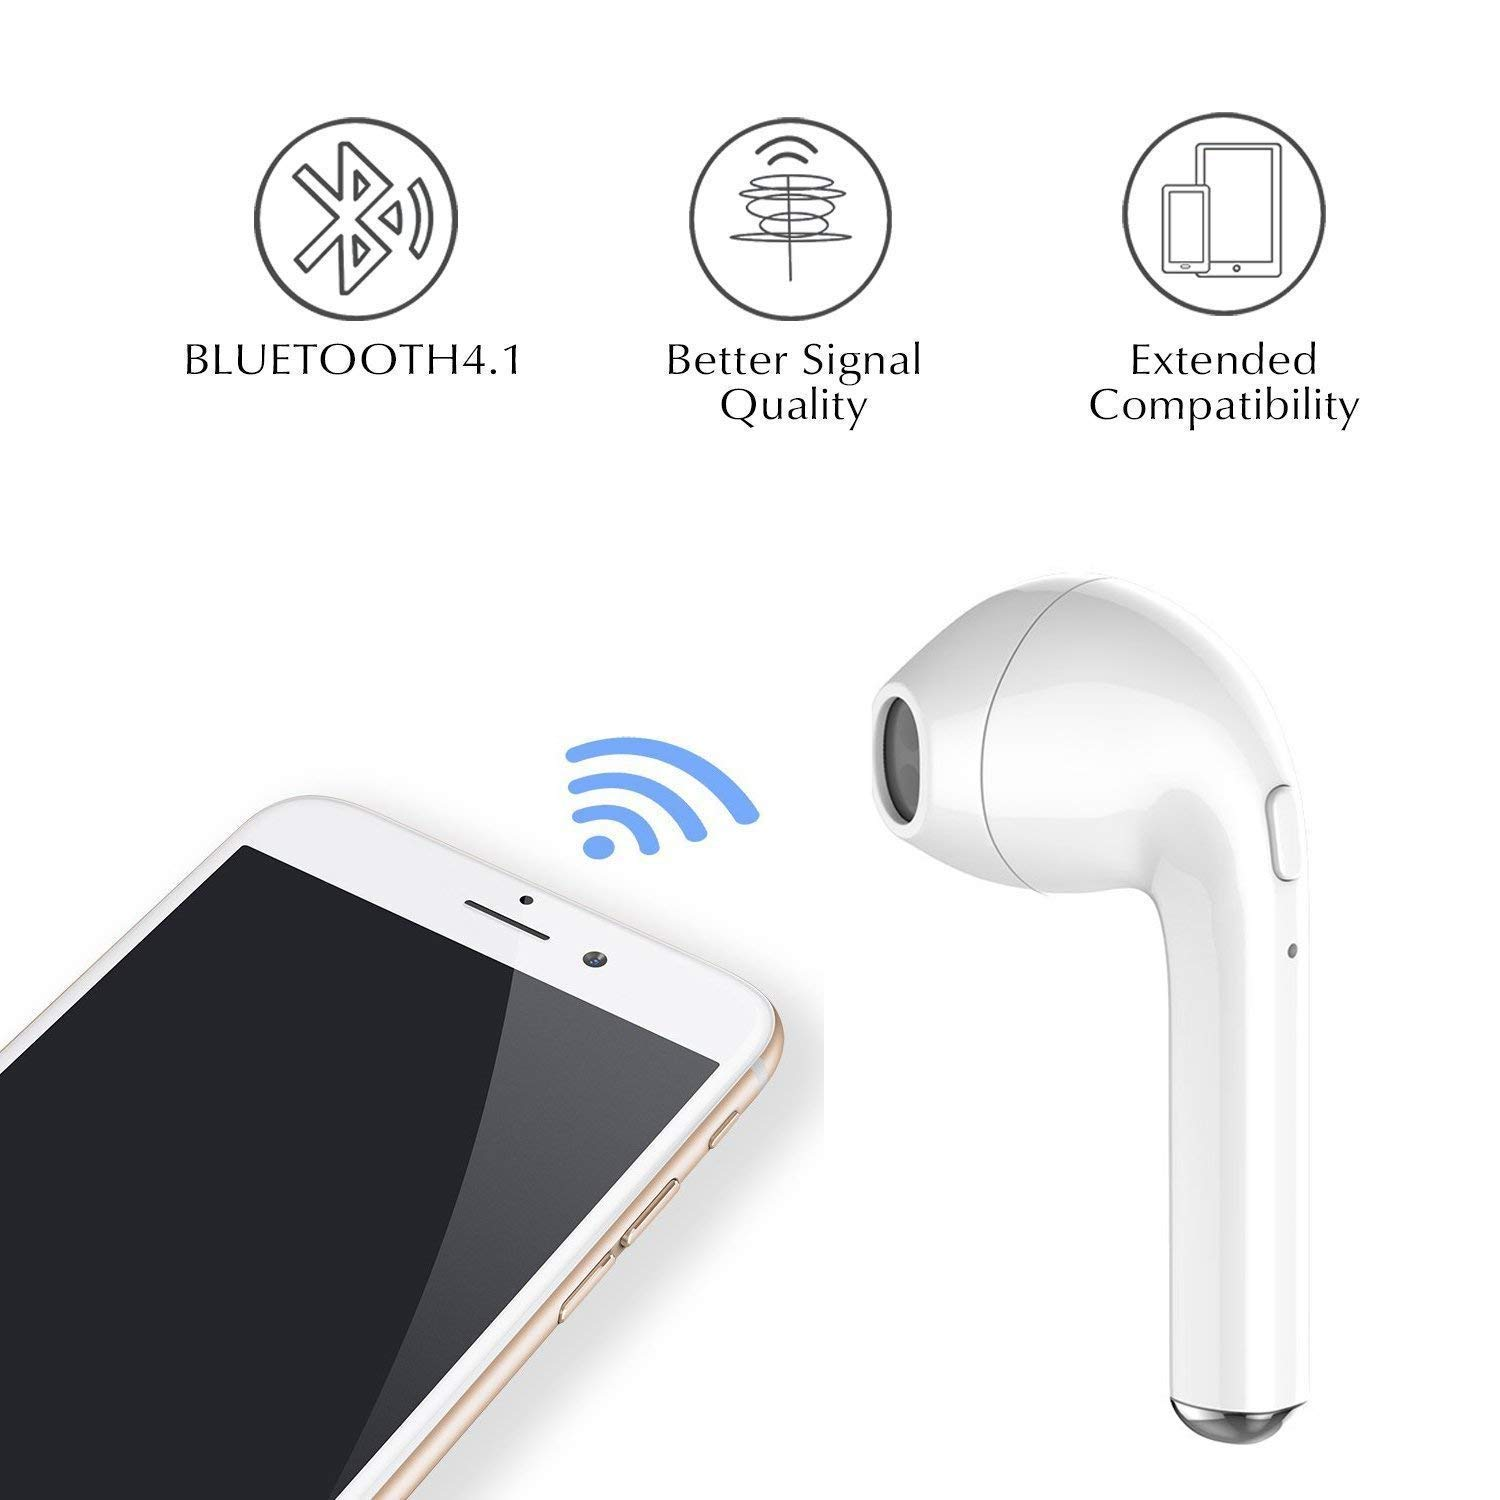 Bluetooth Earbuds,True Wireless Bluetooth Headphones with HiFi 3D Stereo Sound,Built-in Mic with Portable Charging Case Compatible Phone X 8 7 and Android White